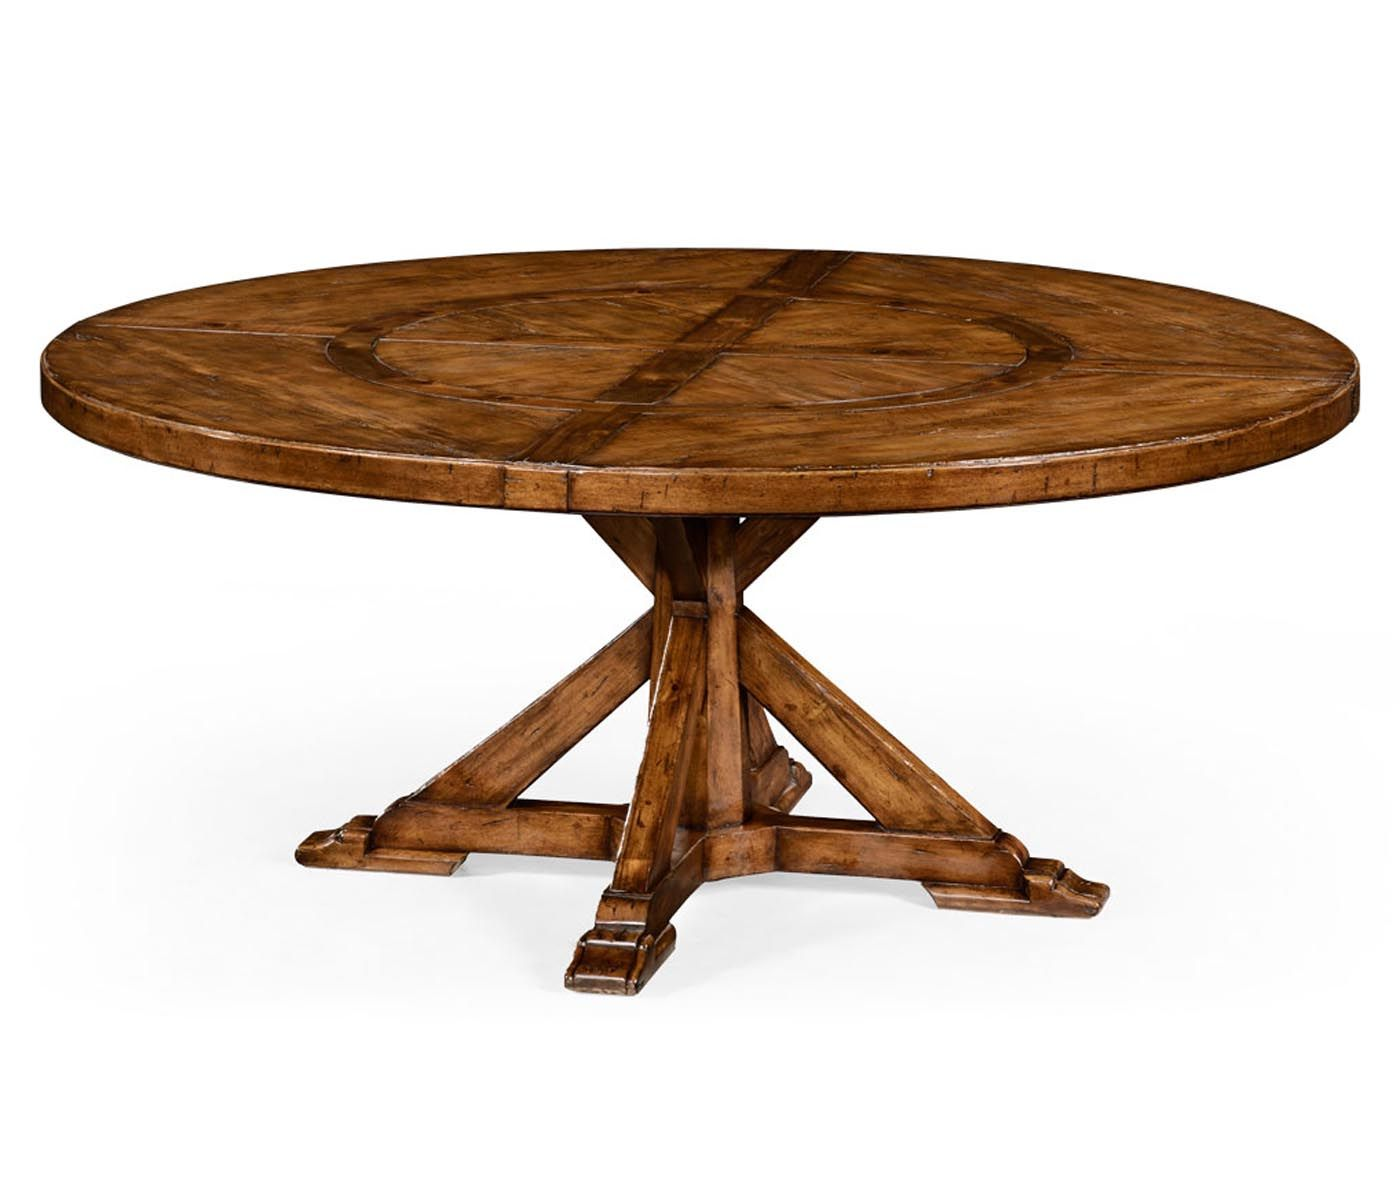 Country Style Walnut Round Dining Table Inbuilt Lazy Susan 72 X Glamorous Large Round Dining Room Tables Design Ideas